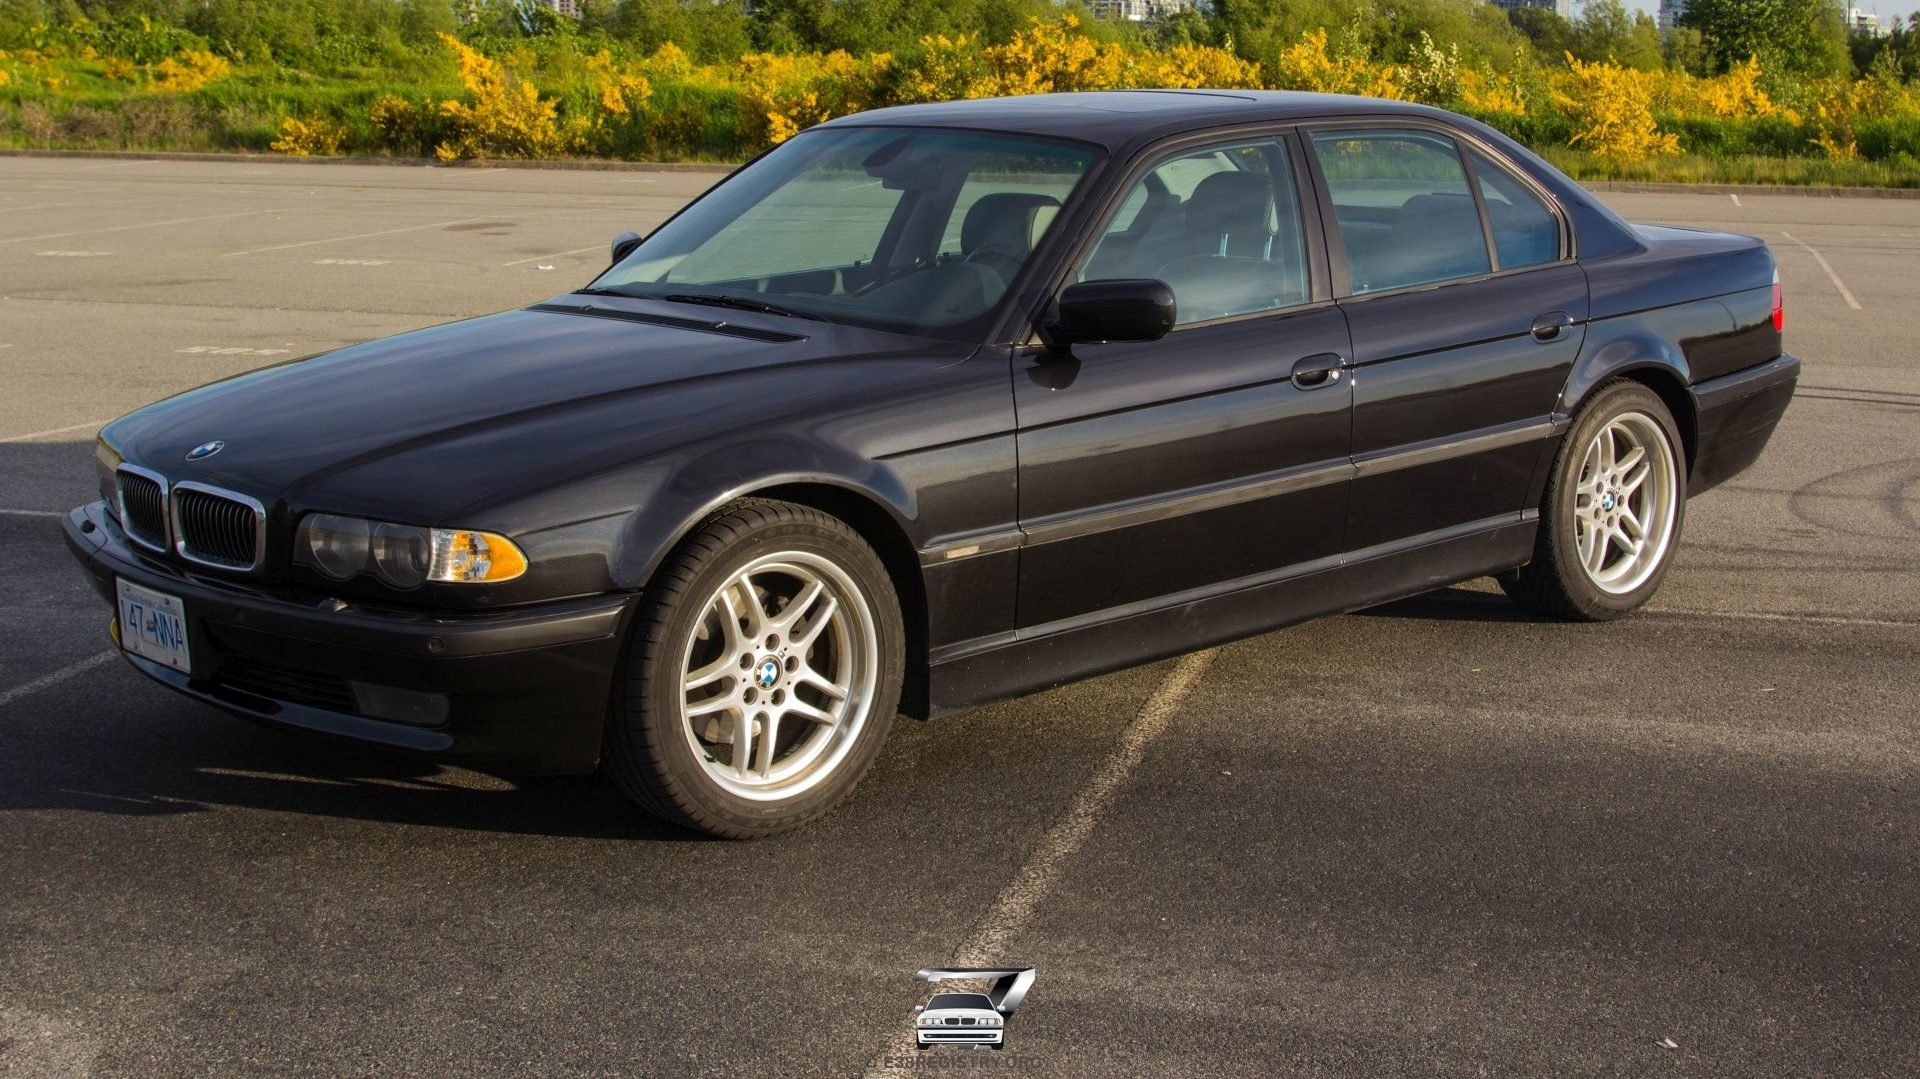 The BMW E38 7 Series Registry